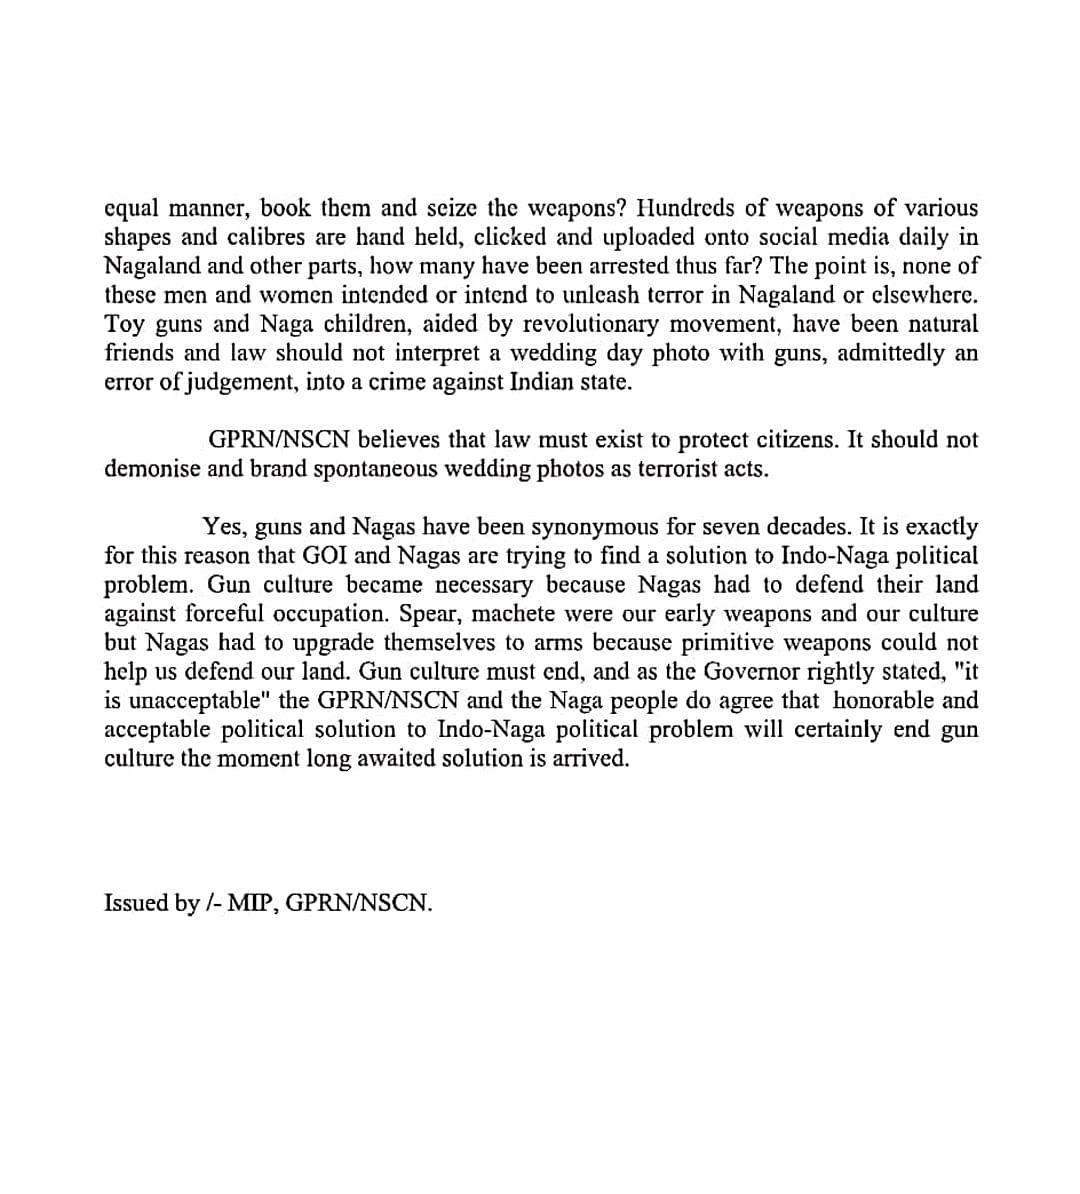 The press communique issued by the MIP of GPRN/NSCN (page 2)